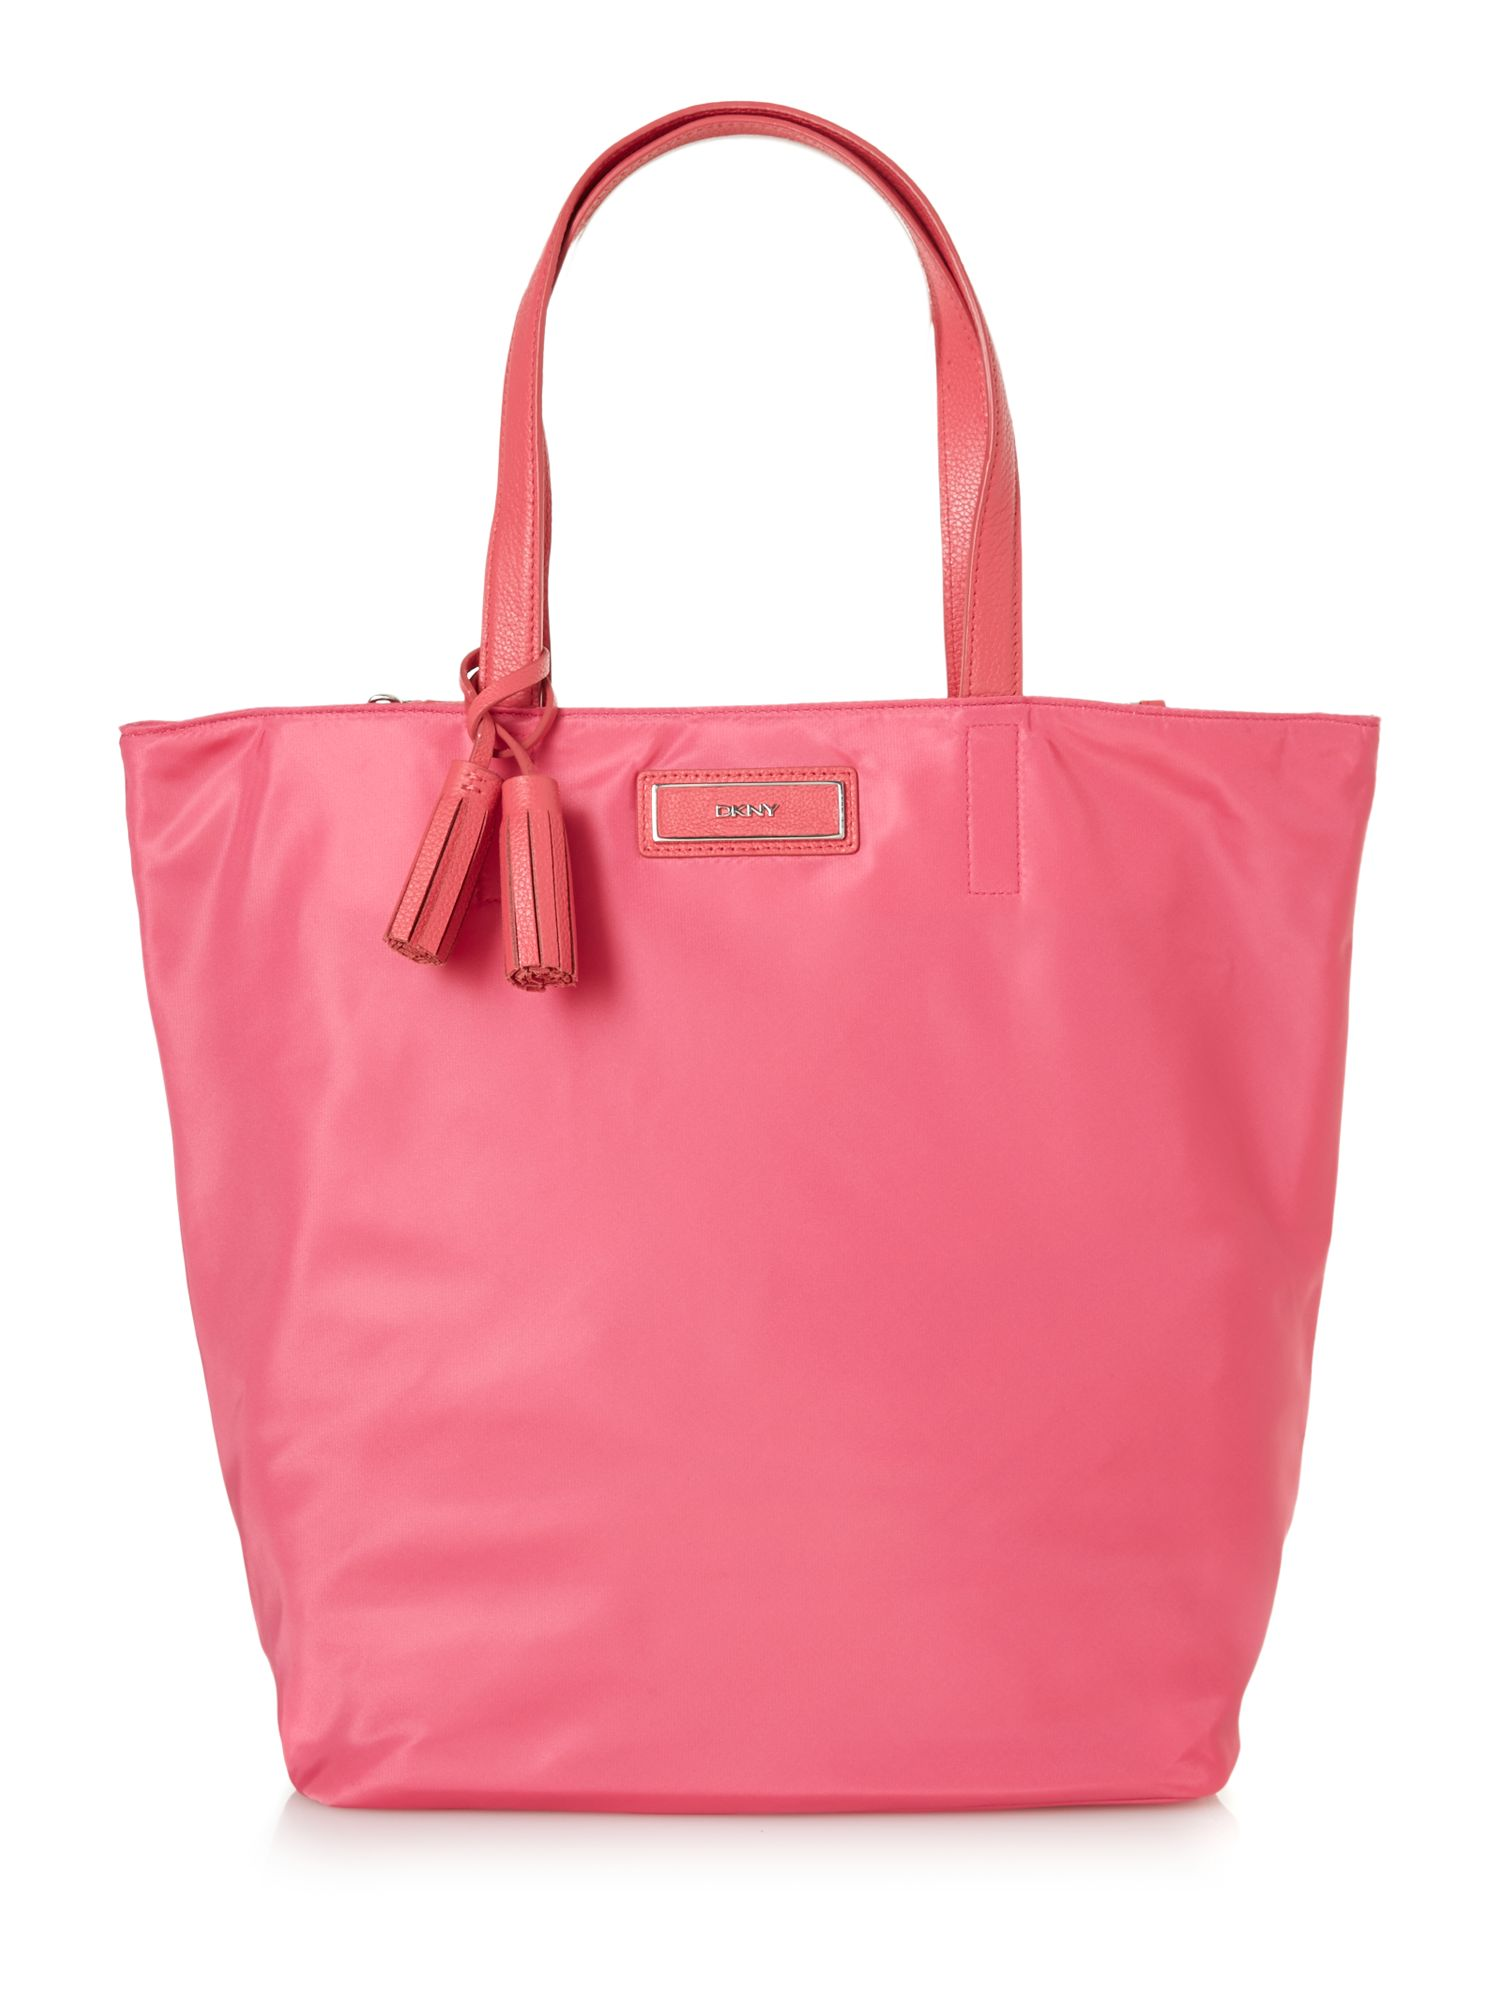 Nylon pink large tassel tote bag